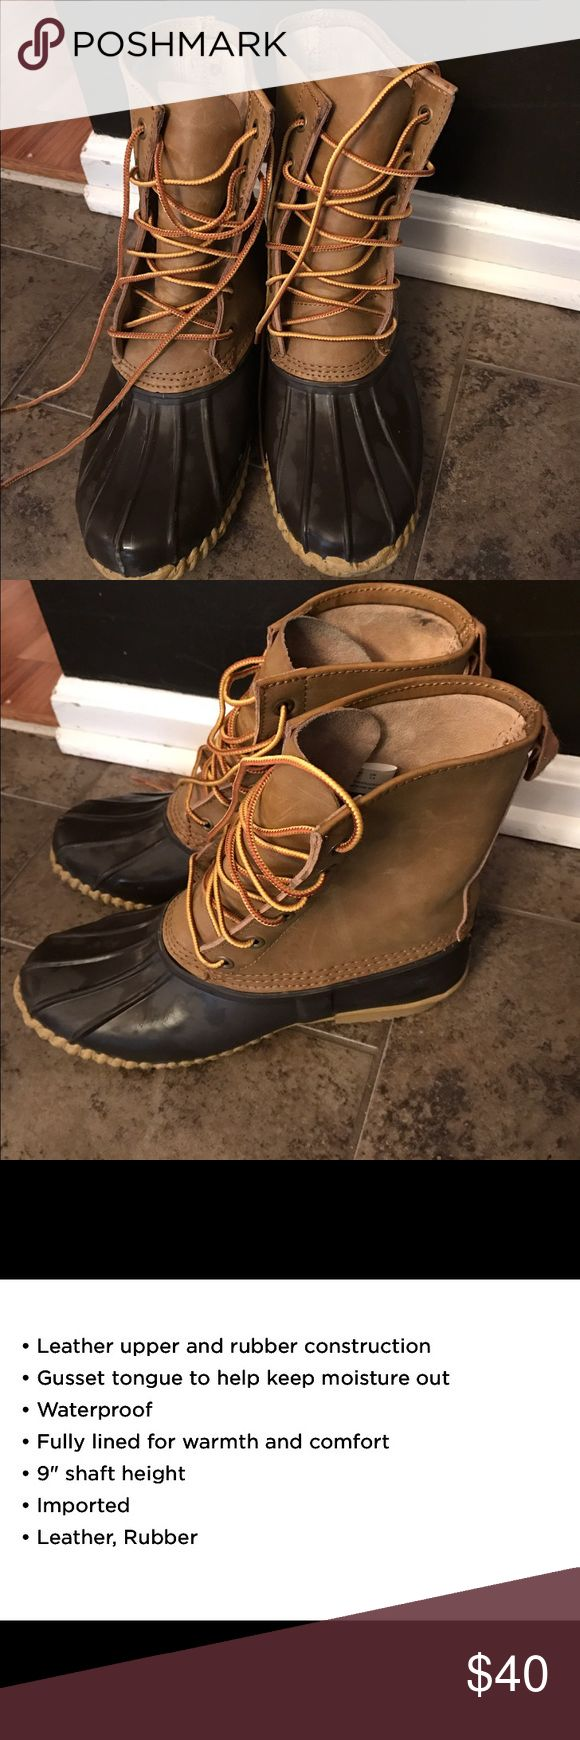 AE Duck Boots So I bought these thinking they were a women's 8 but turns out they are men's.... if you are a size 10 they would work. Brown rubber with leather boot. Great for rain or snow... Worn only a handful of times so they are in great condition! American Eagle Outfitters Shoes Winter & Rain Boots